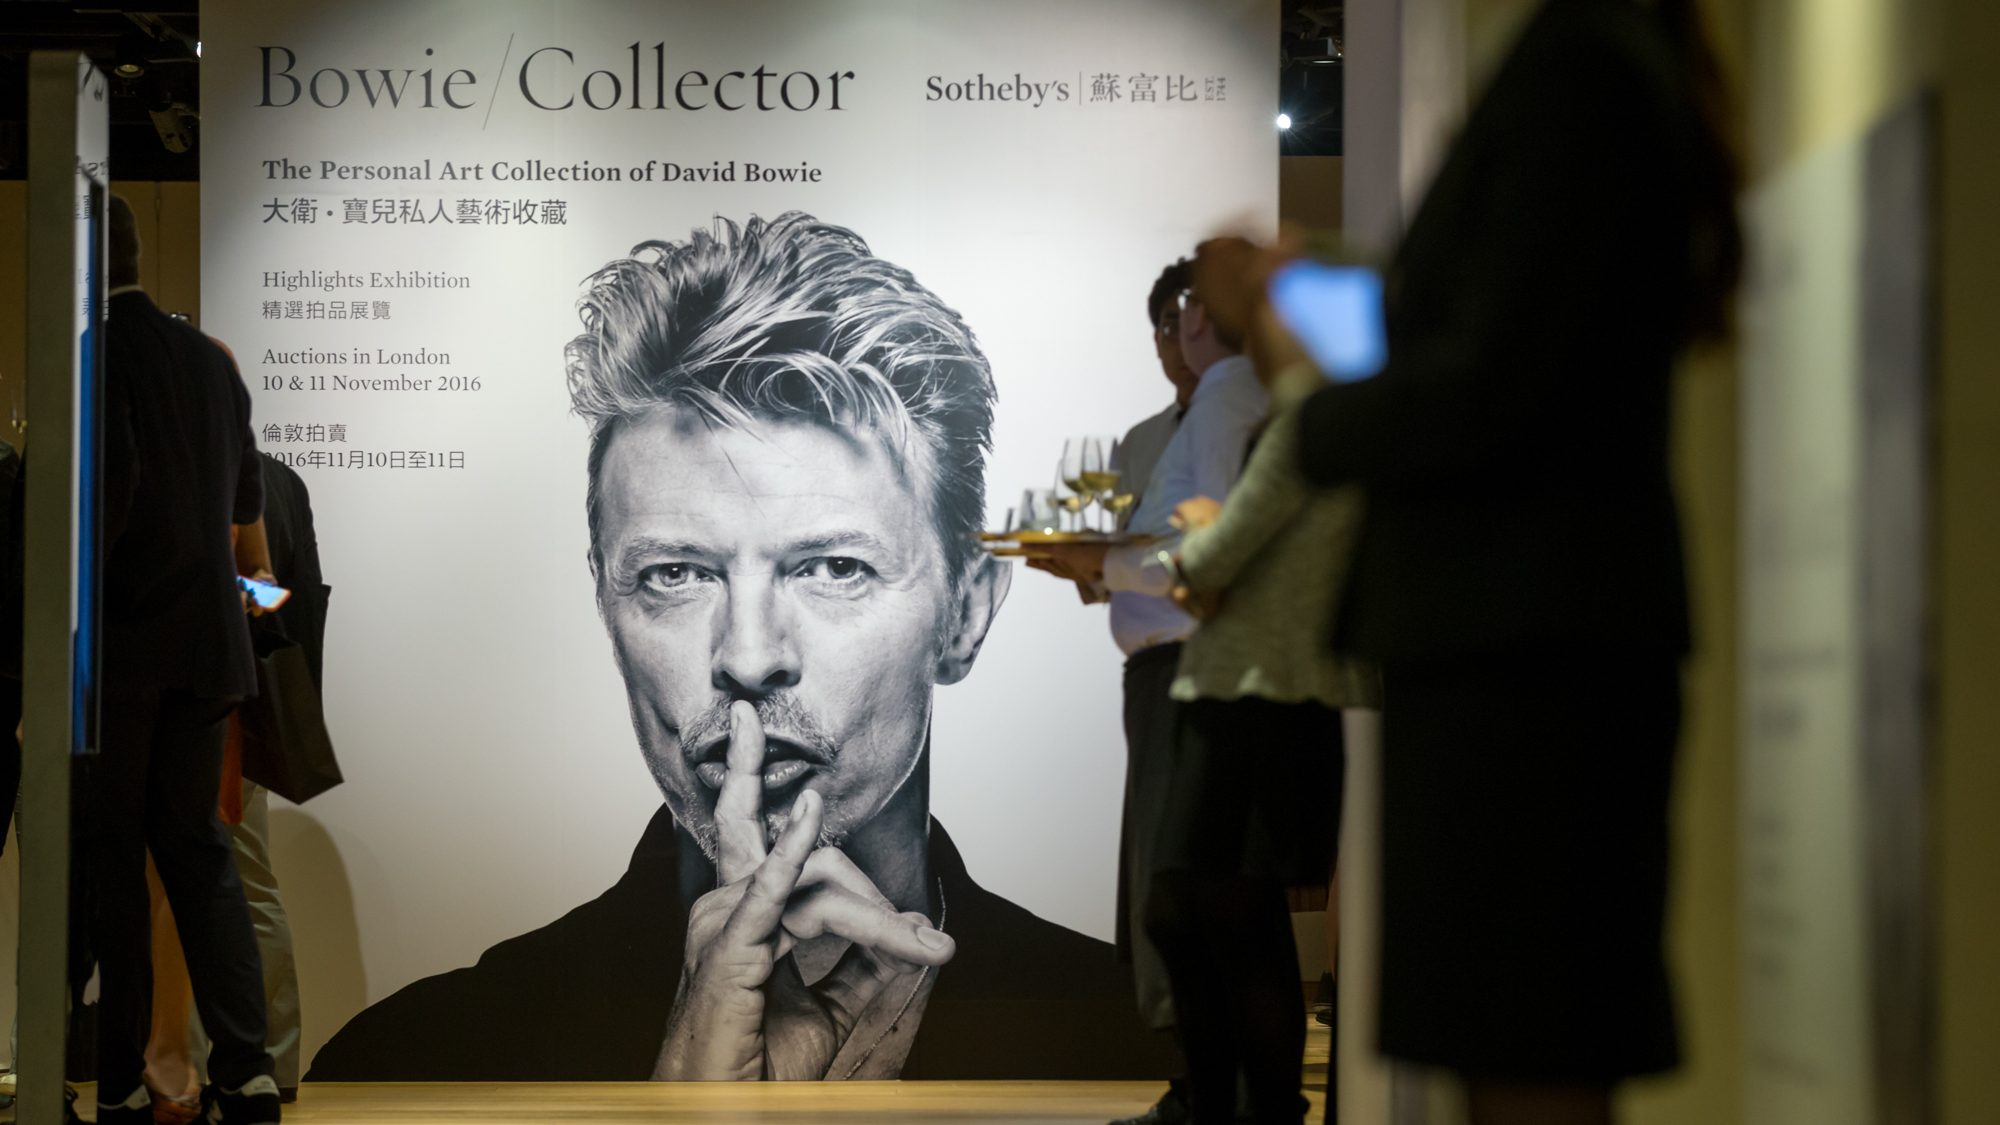 David Bowie's art collection, which will go on sale at Sotheby's in London on November 10 and 11, was recently displayed in Hong Kong.